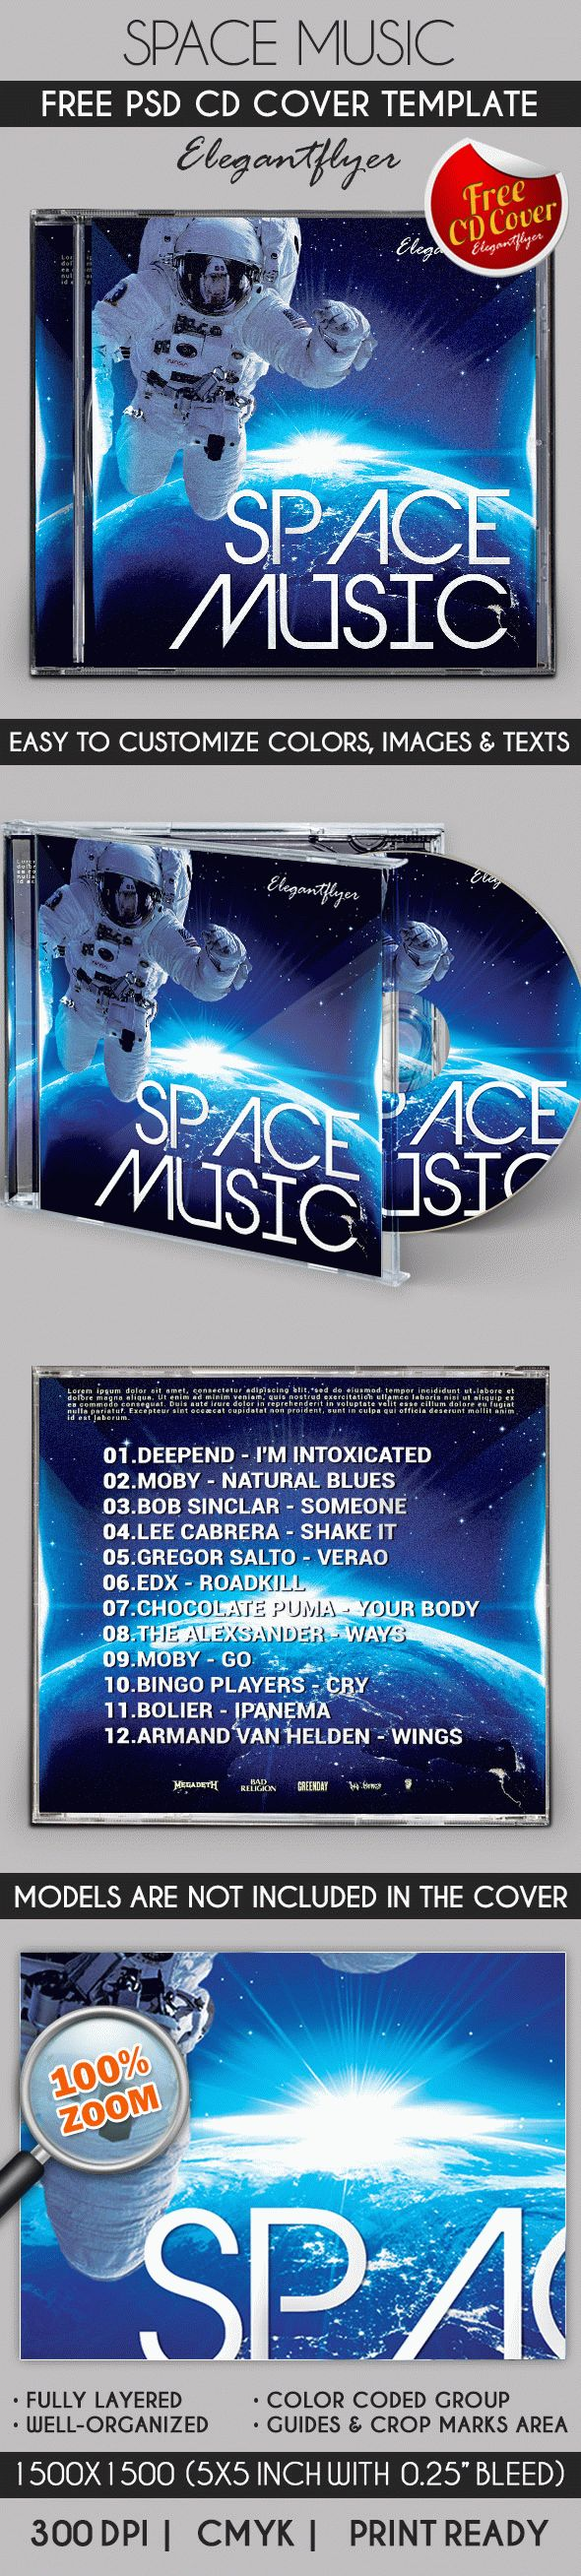 Space Music – Free CD Cover PSD Template | Free CD & DVD cover ...